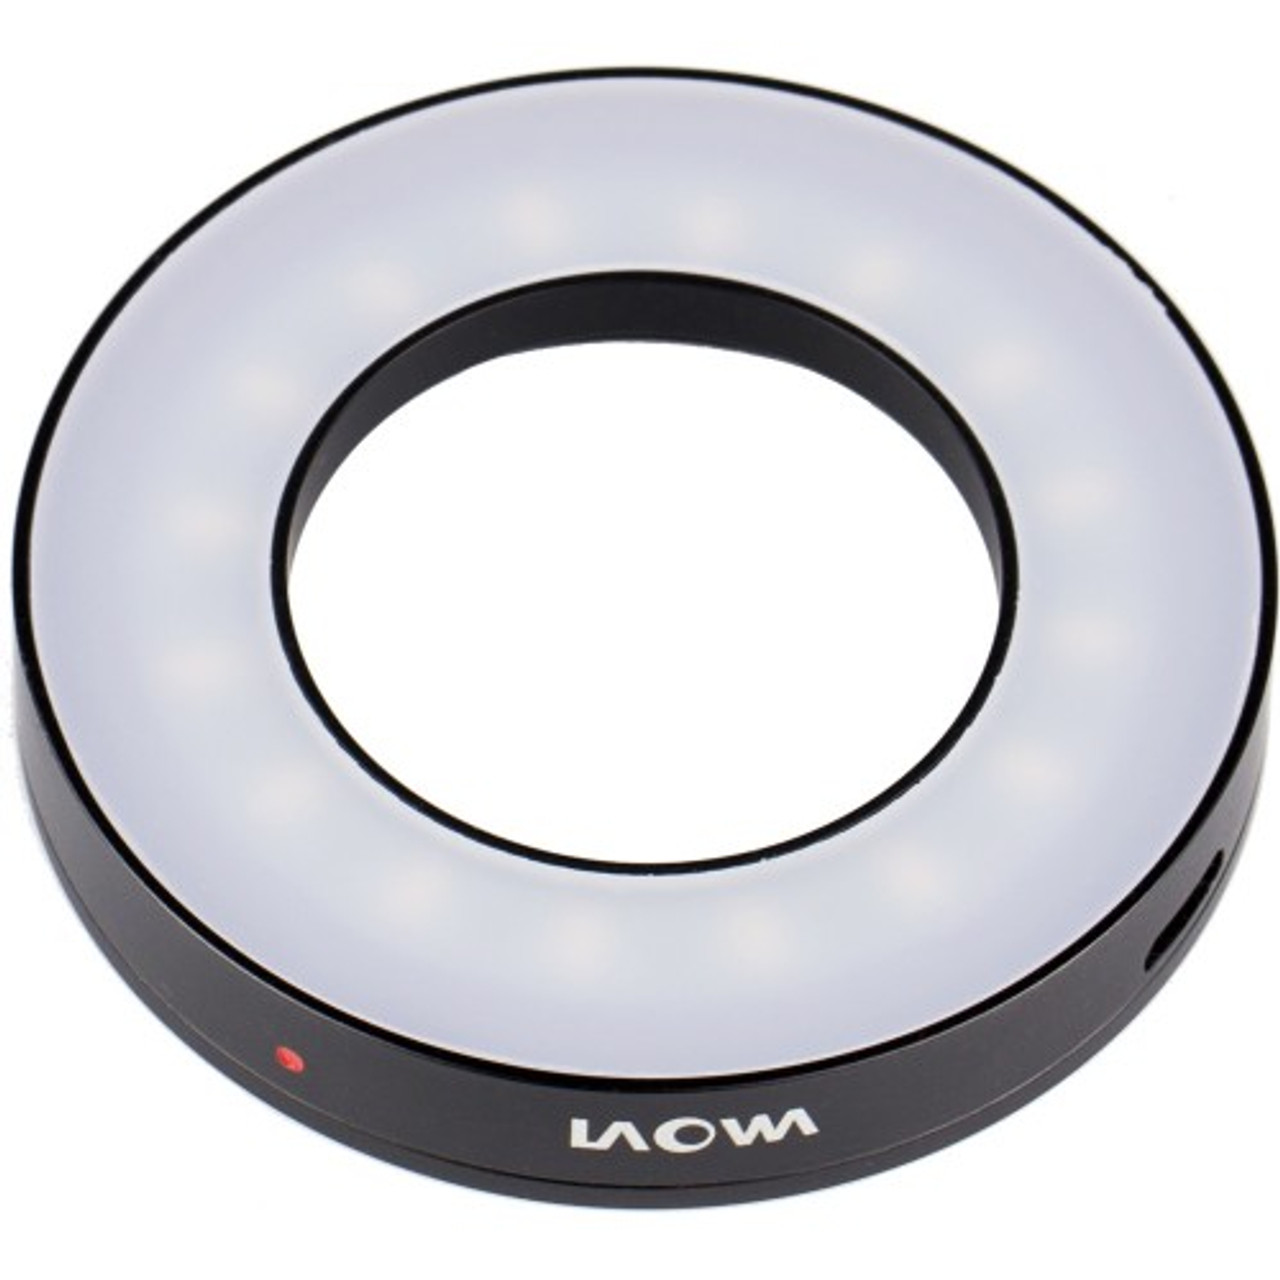 Laowa LED Ring Light for 25mm Macro Lens